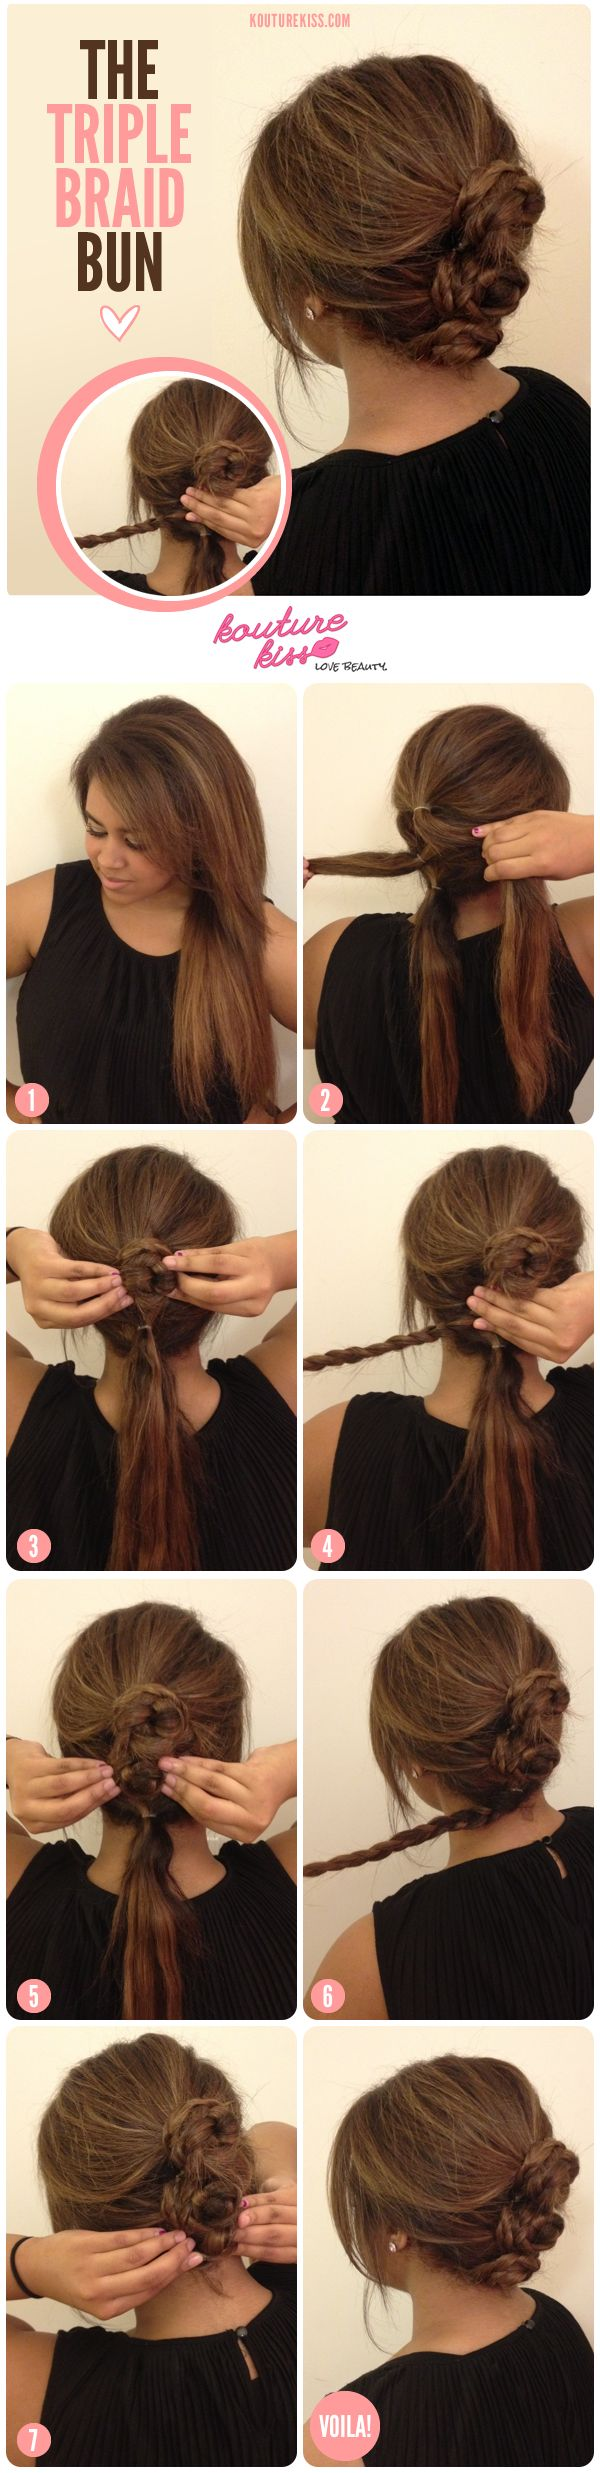 hair bun styles tutorial 24 best images about rotc hair on bridal updo 3490